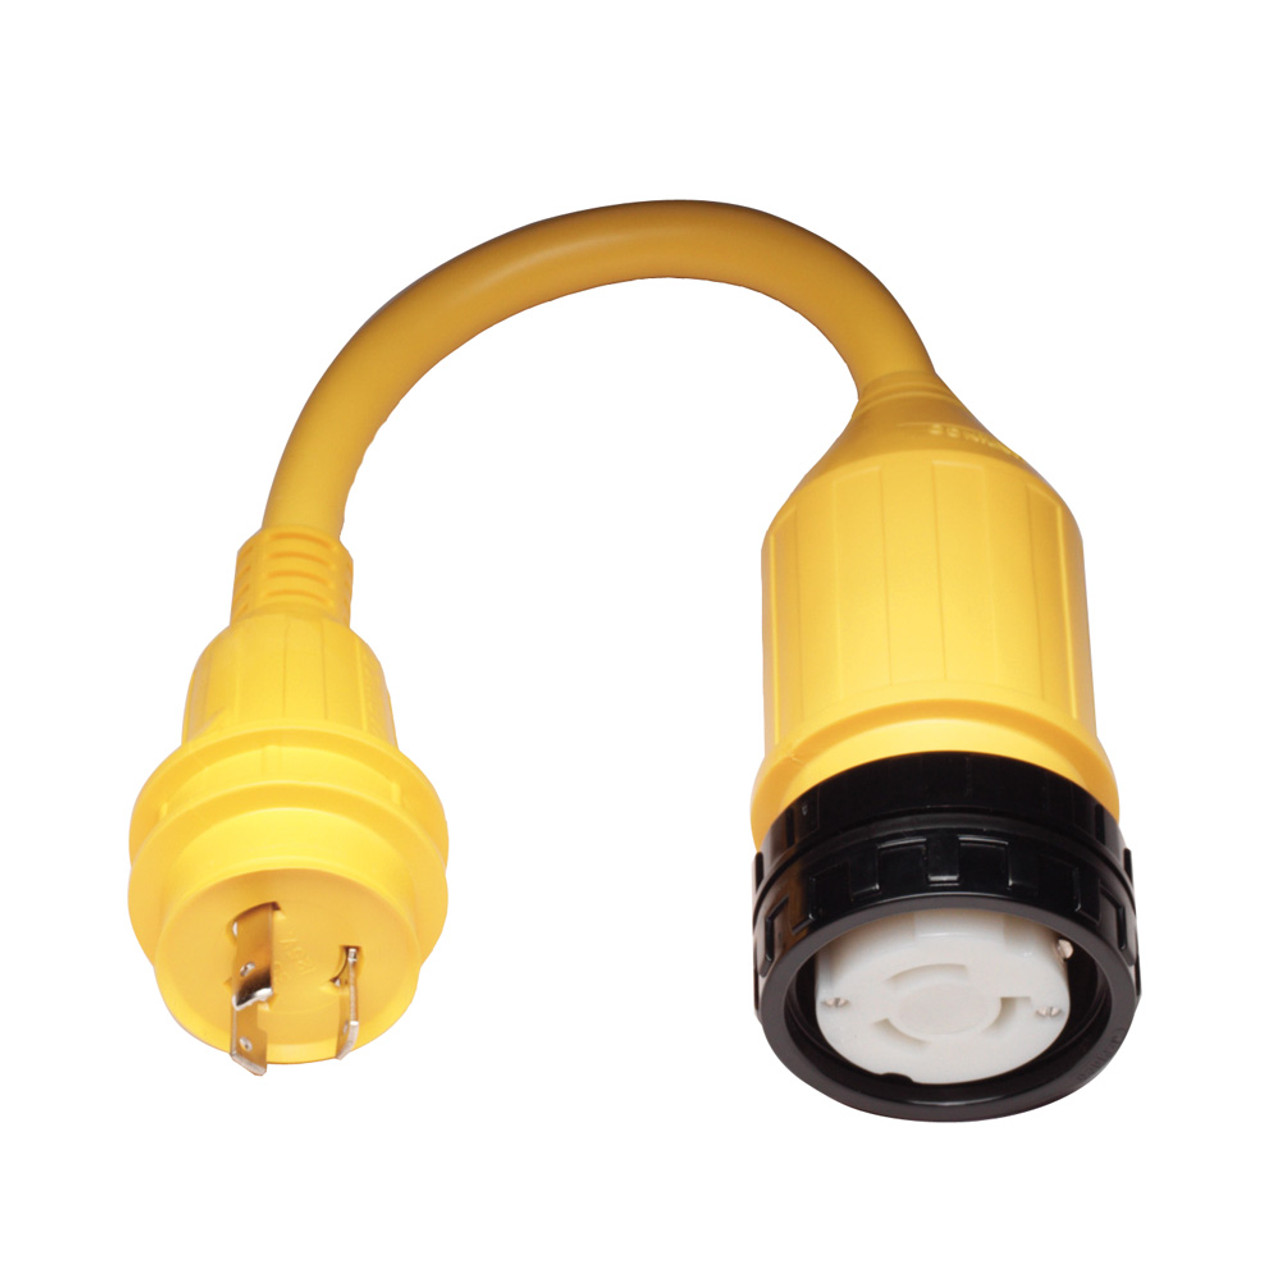 111A - Marinco Pigtail Adapter - 50A Female to 30A Male